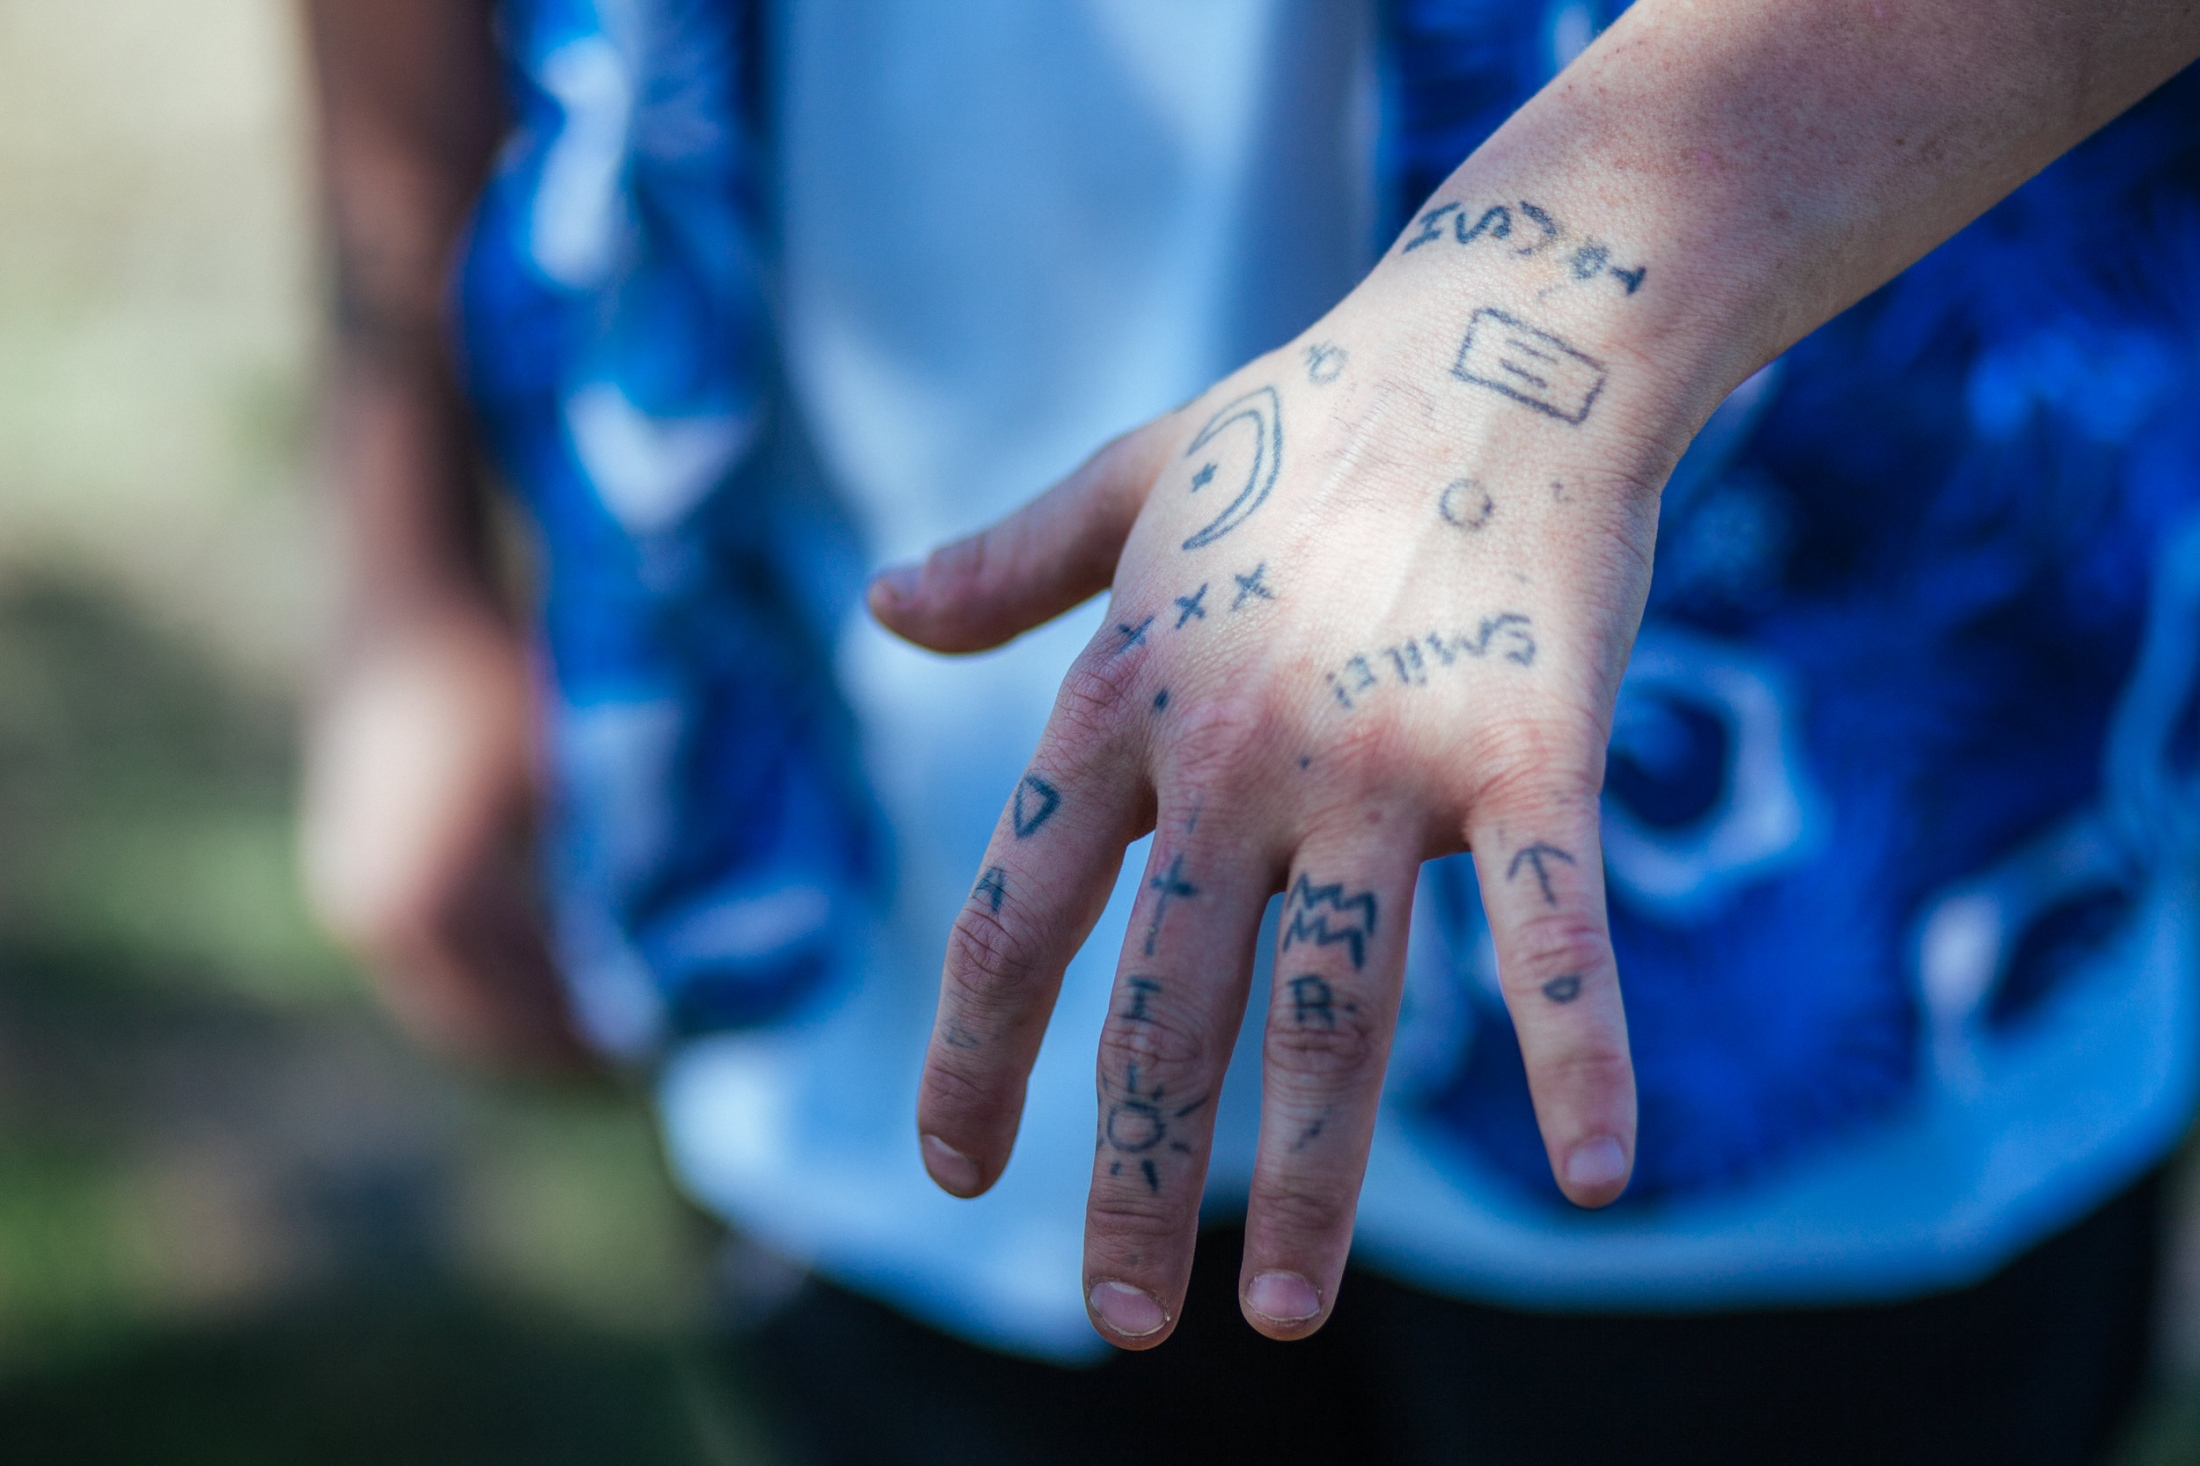 Forest displays tattoos that represent her sexuality, zodiac sign, religious beliefs, and others, Payette, ID.